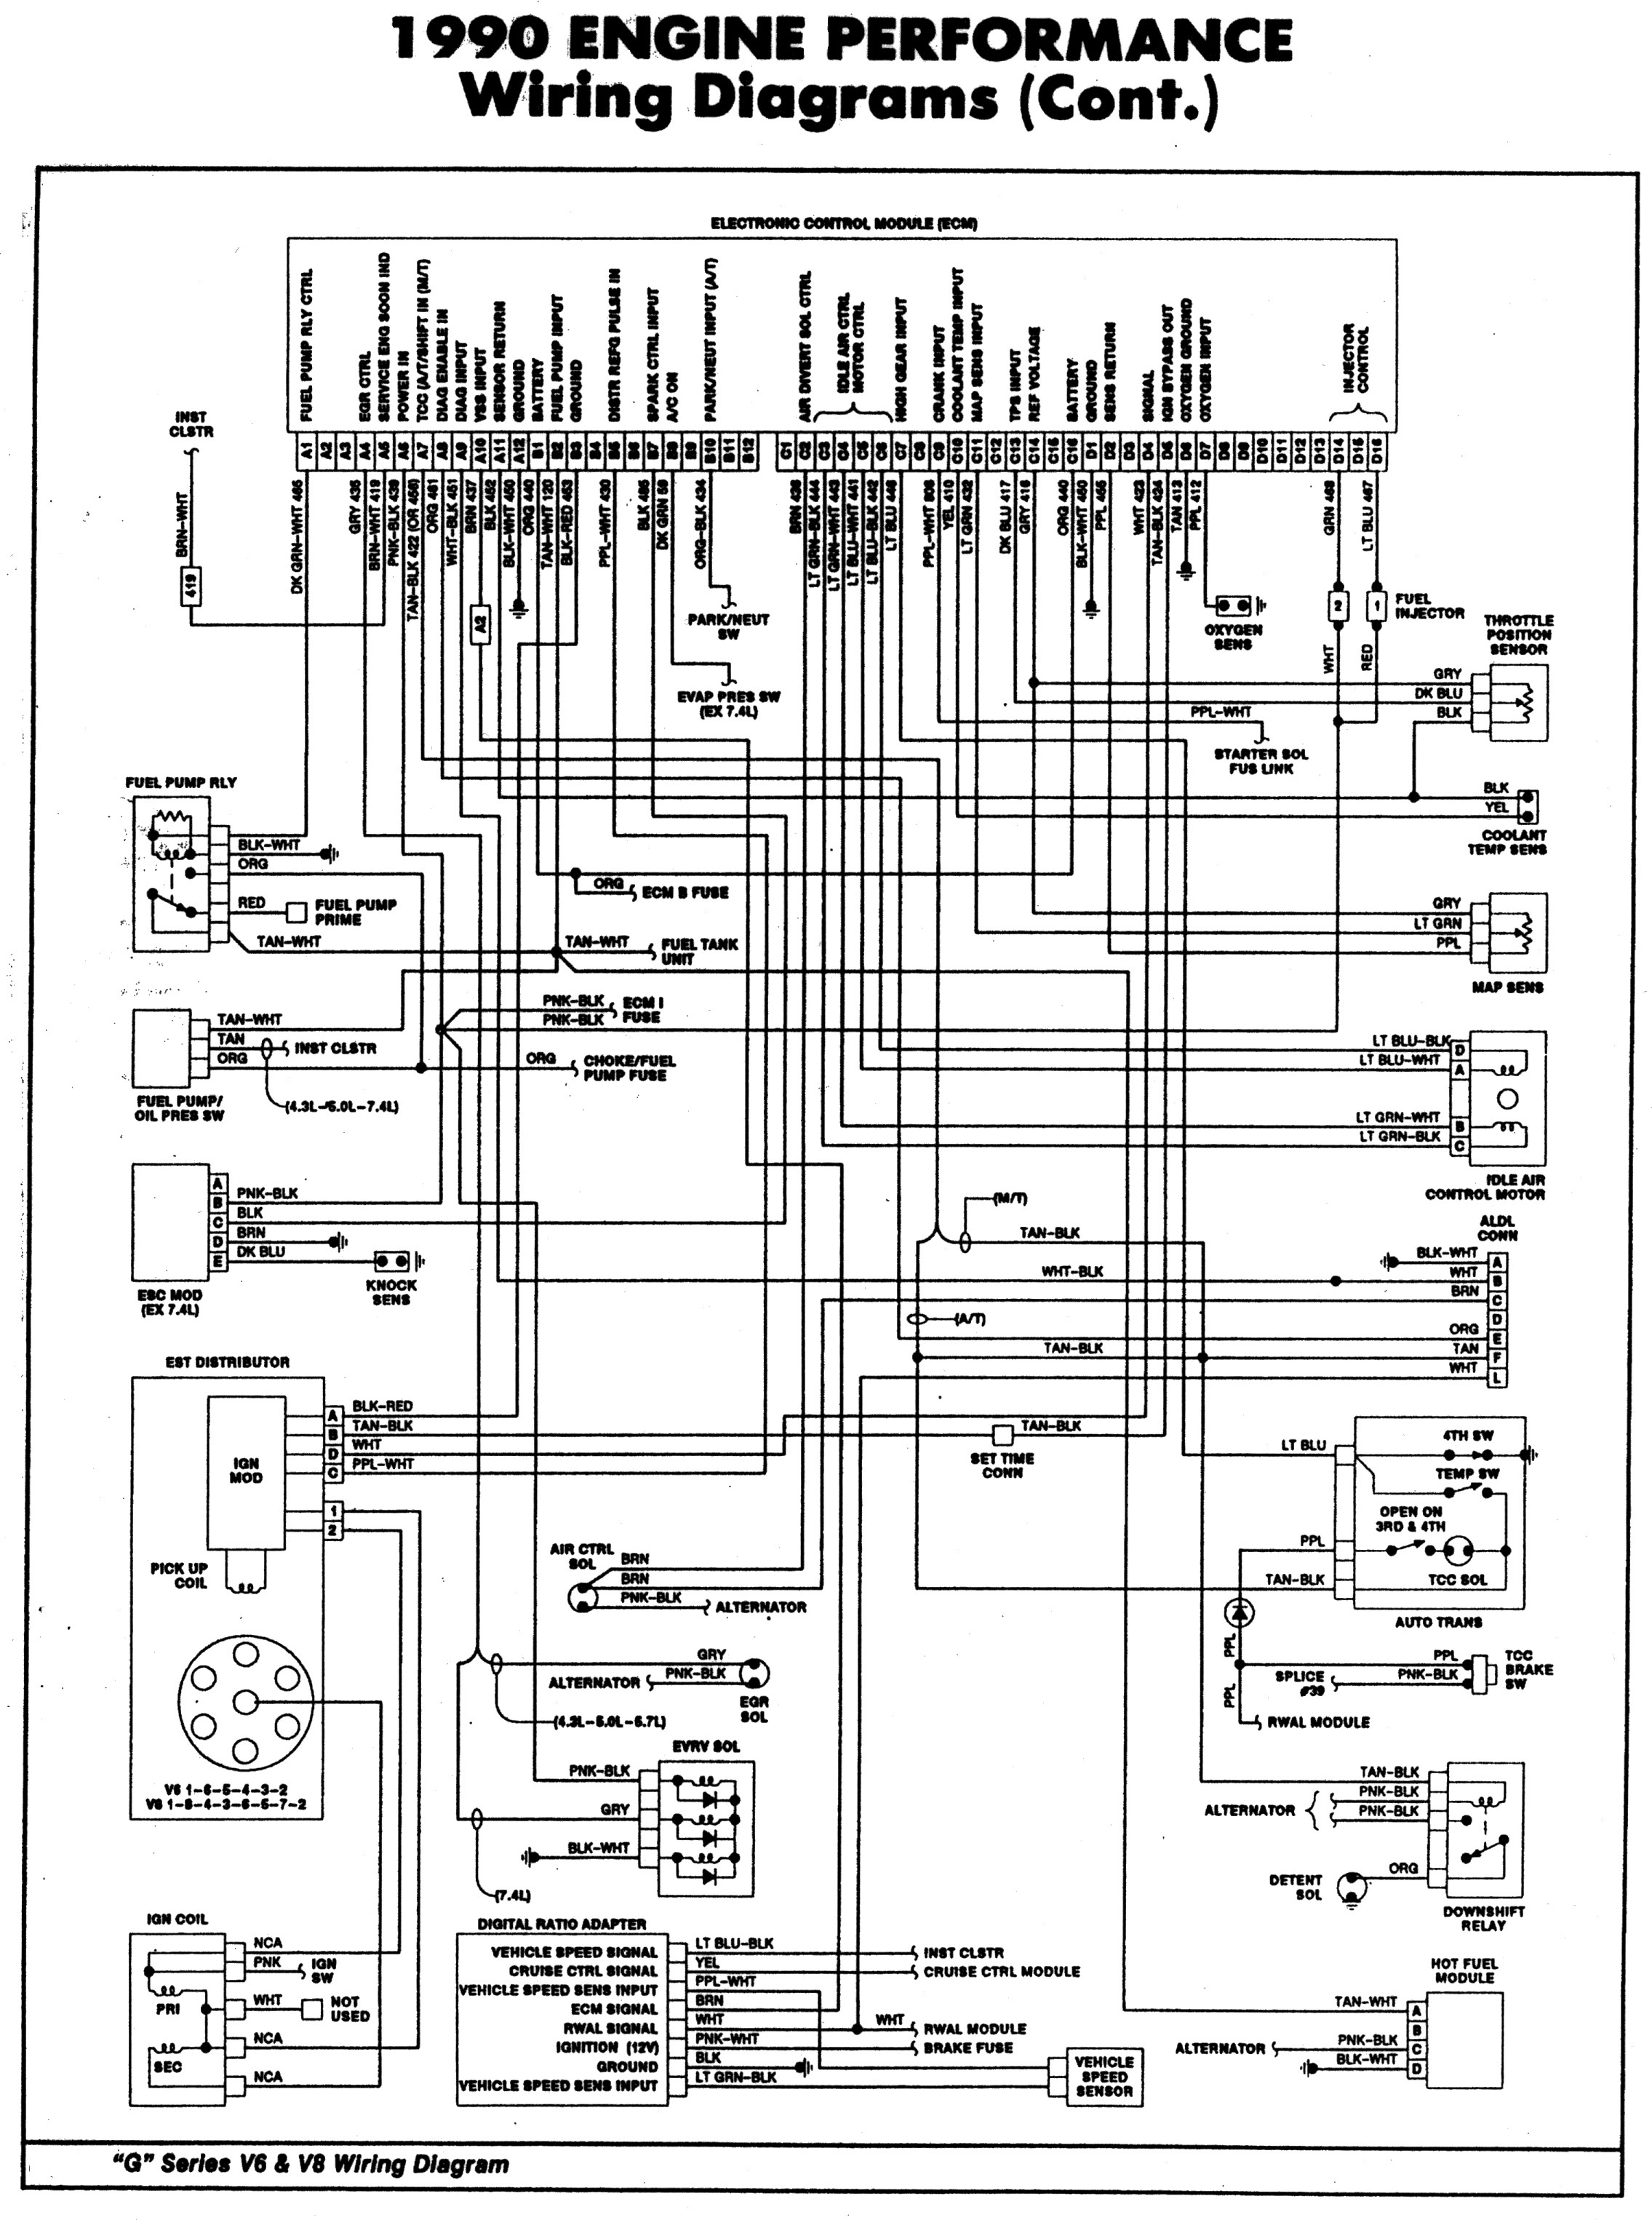 hight resolution of ignitiondiagram 1990 chevy suburban tbi 350 installation land rh pinterest com 1990 gmc suburban wiring diagram 1990 chevy suburban wiring diagram